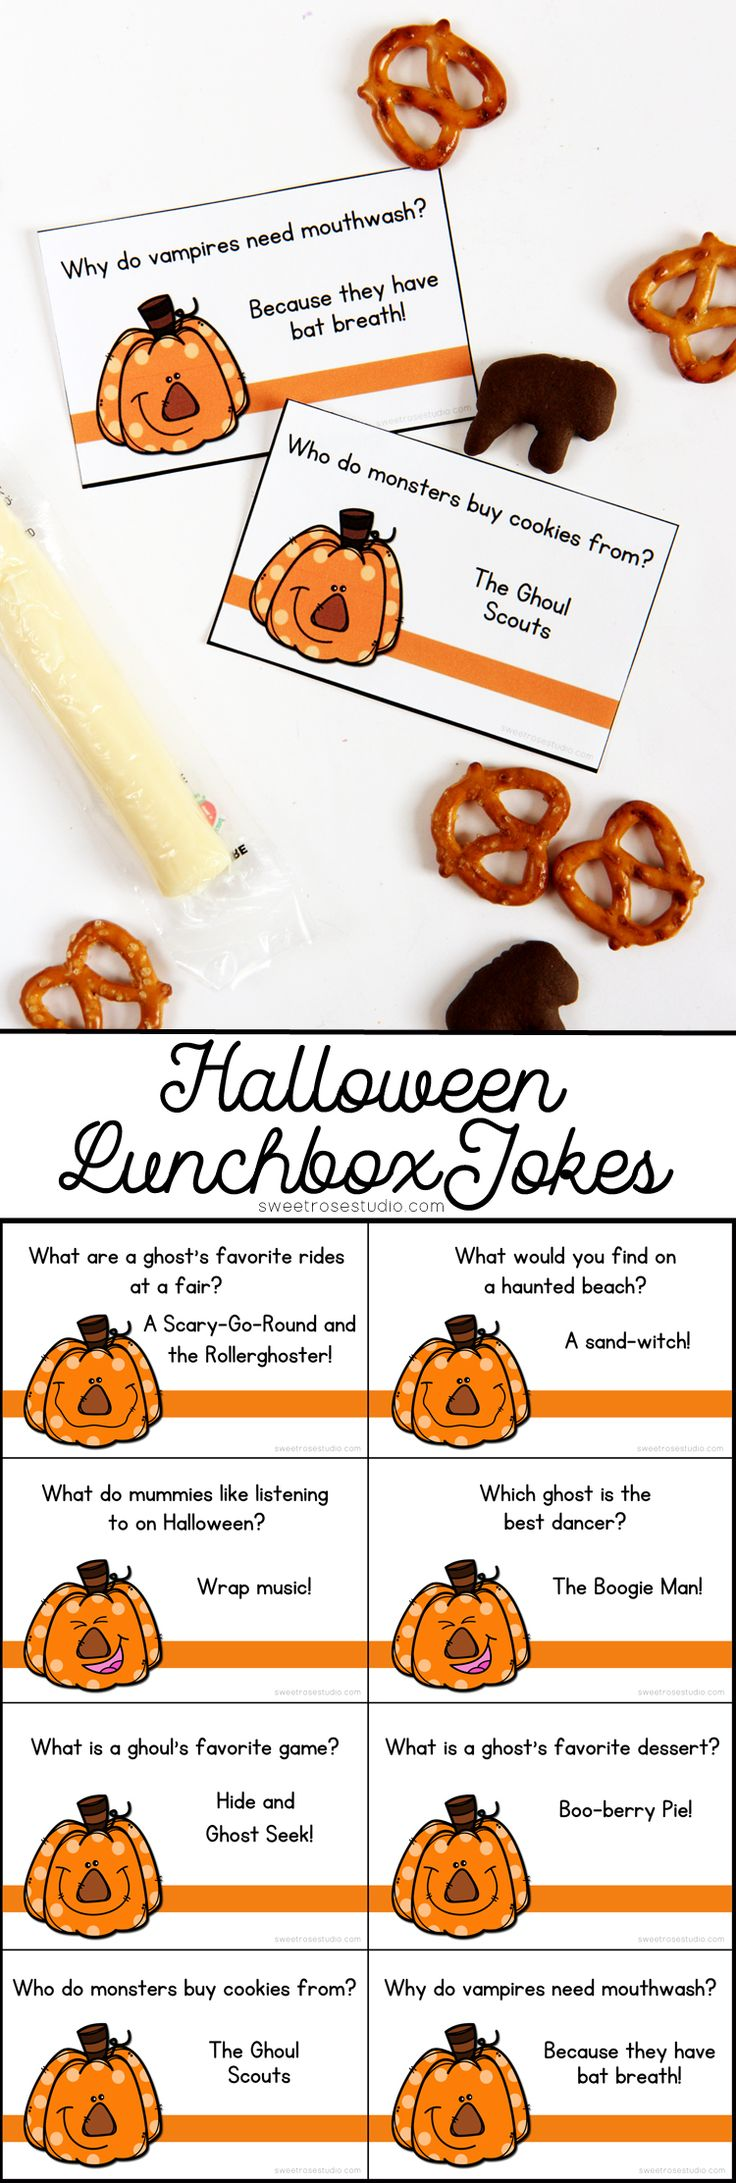 These FREE Halloween Lunchbox Jokes are a fun way to add some laughs to your kiddo's lunches!